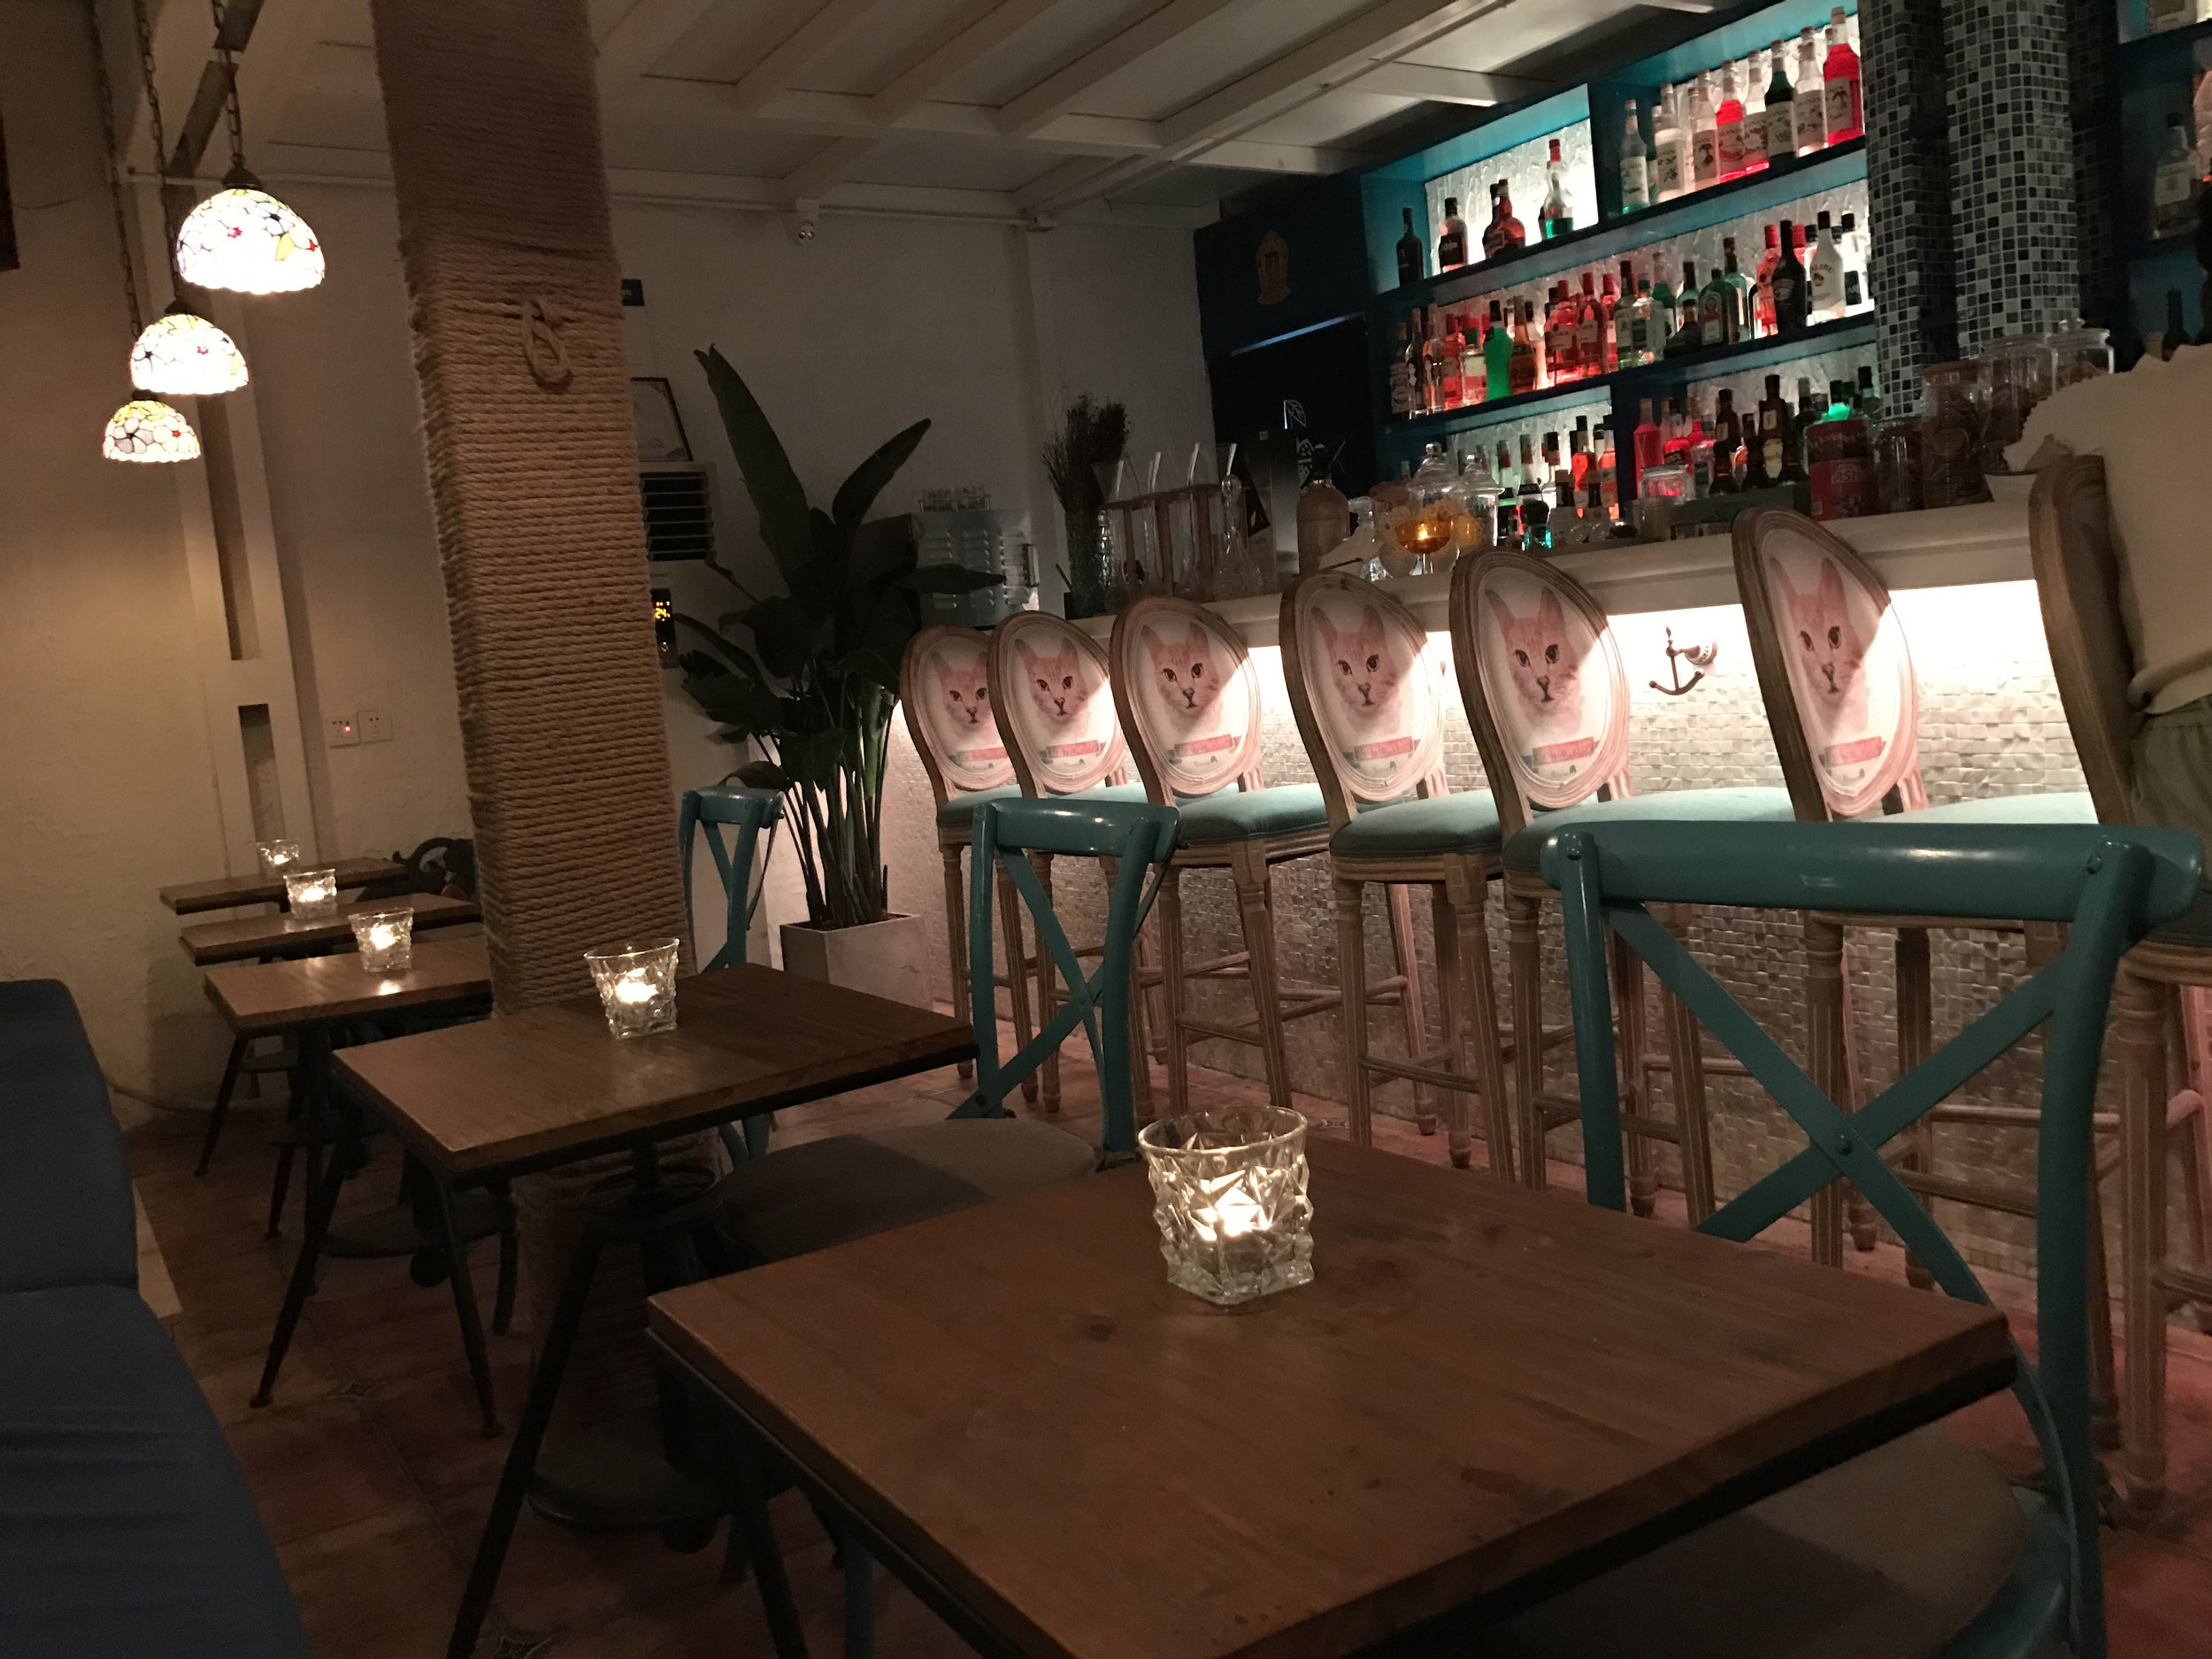 Sirena is a restaurant featuring stray cats in Wudaoying alley in Beijing